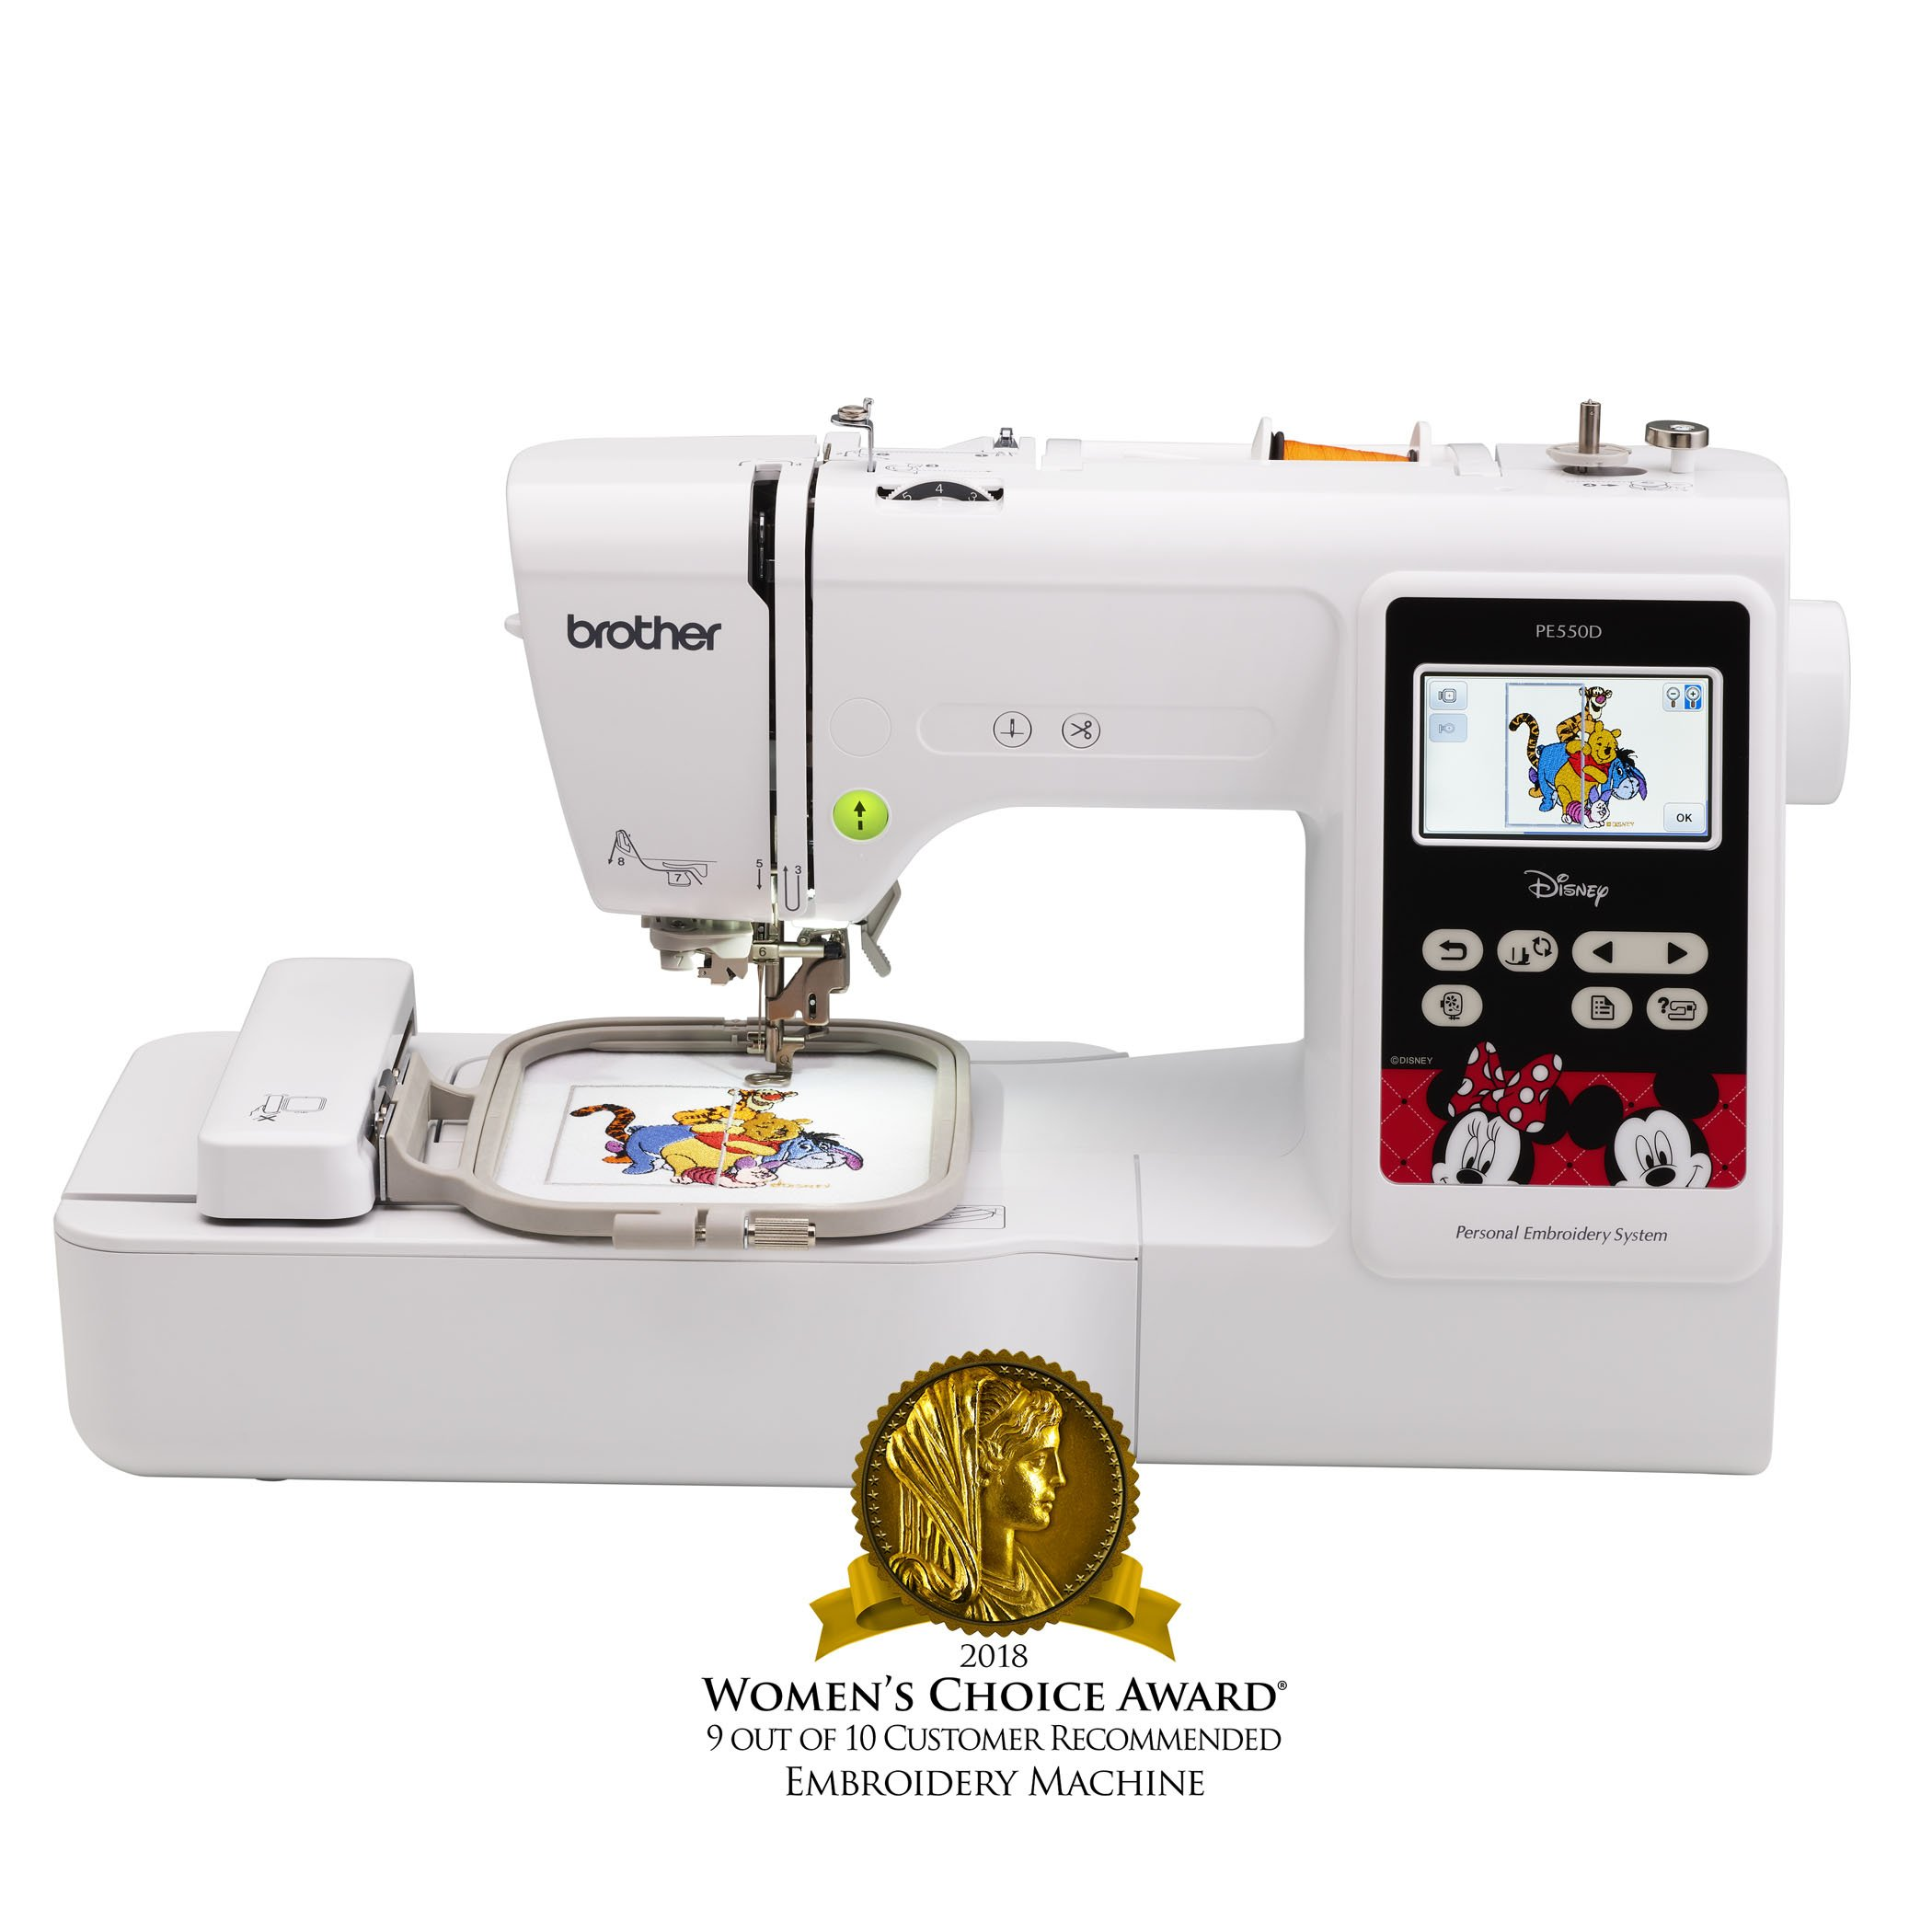 Brother Embroidery Machine, PE550D, 125 Built-In Designs, 45 Disney Designs, Large Color Touch LCD Display, Automatic Needle Threader, 25-Year Limited Warranty by Brother